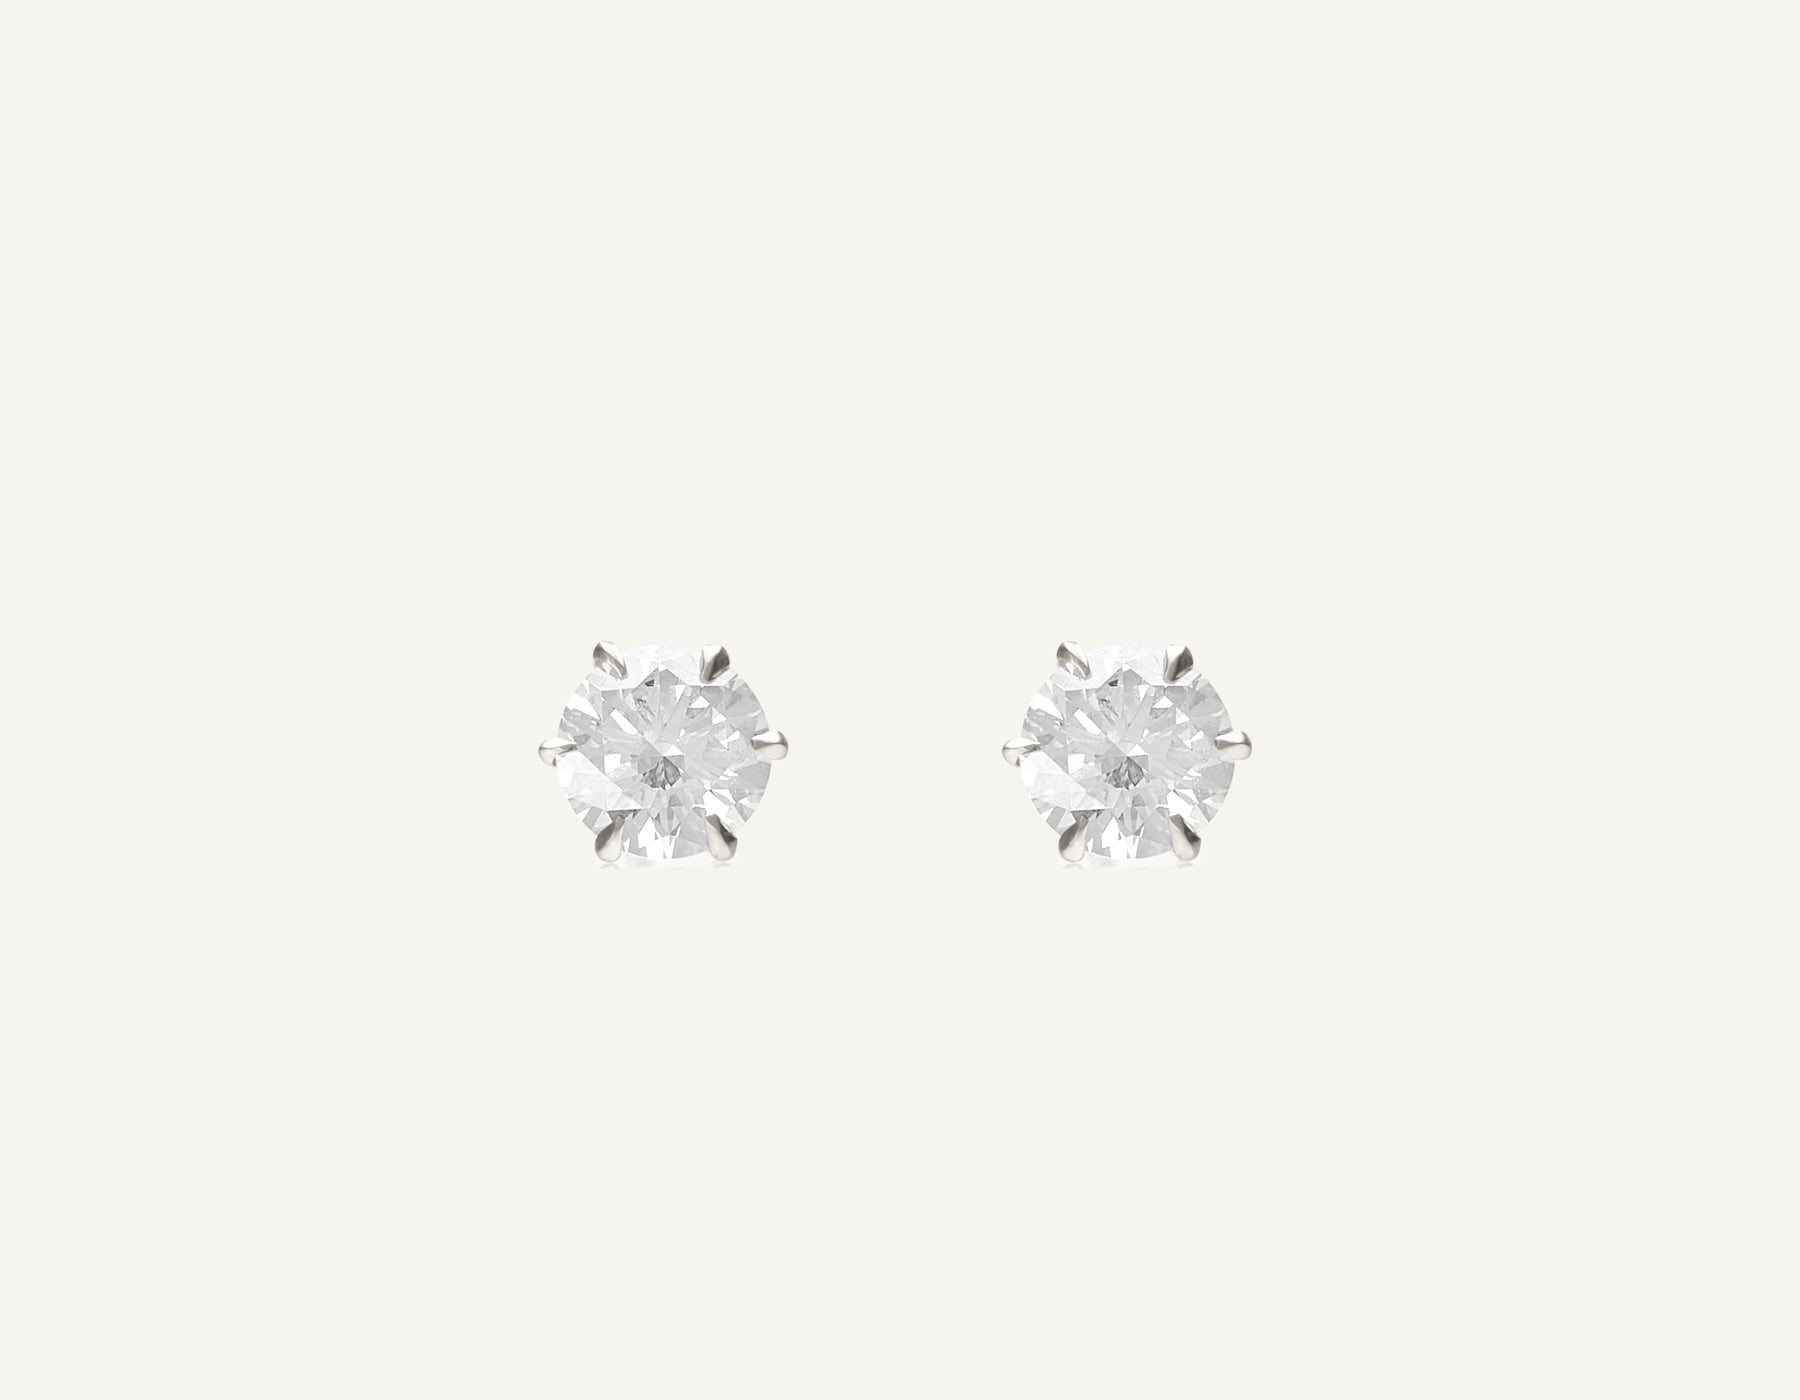 simple classic 18k solid gold 1.0 ct Round Brilliant Diamond Studs earring by Vrai and Oro, 18K White Gold